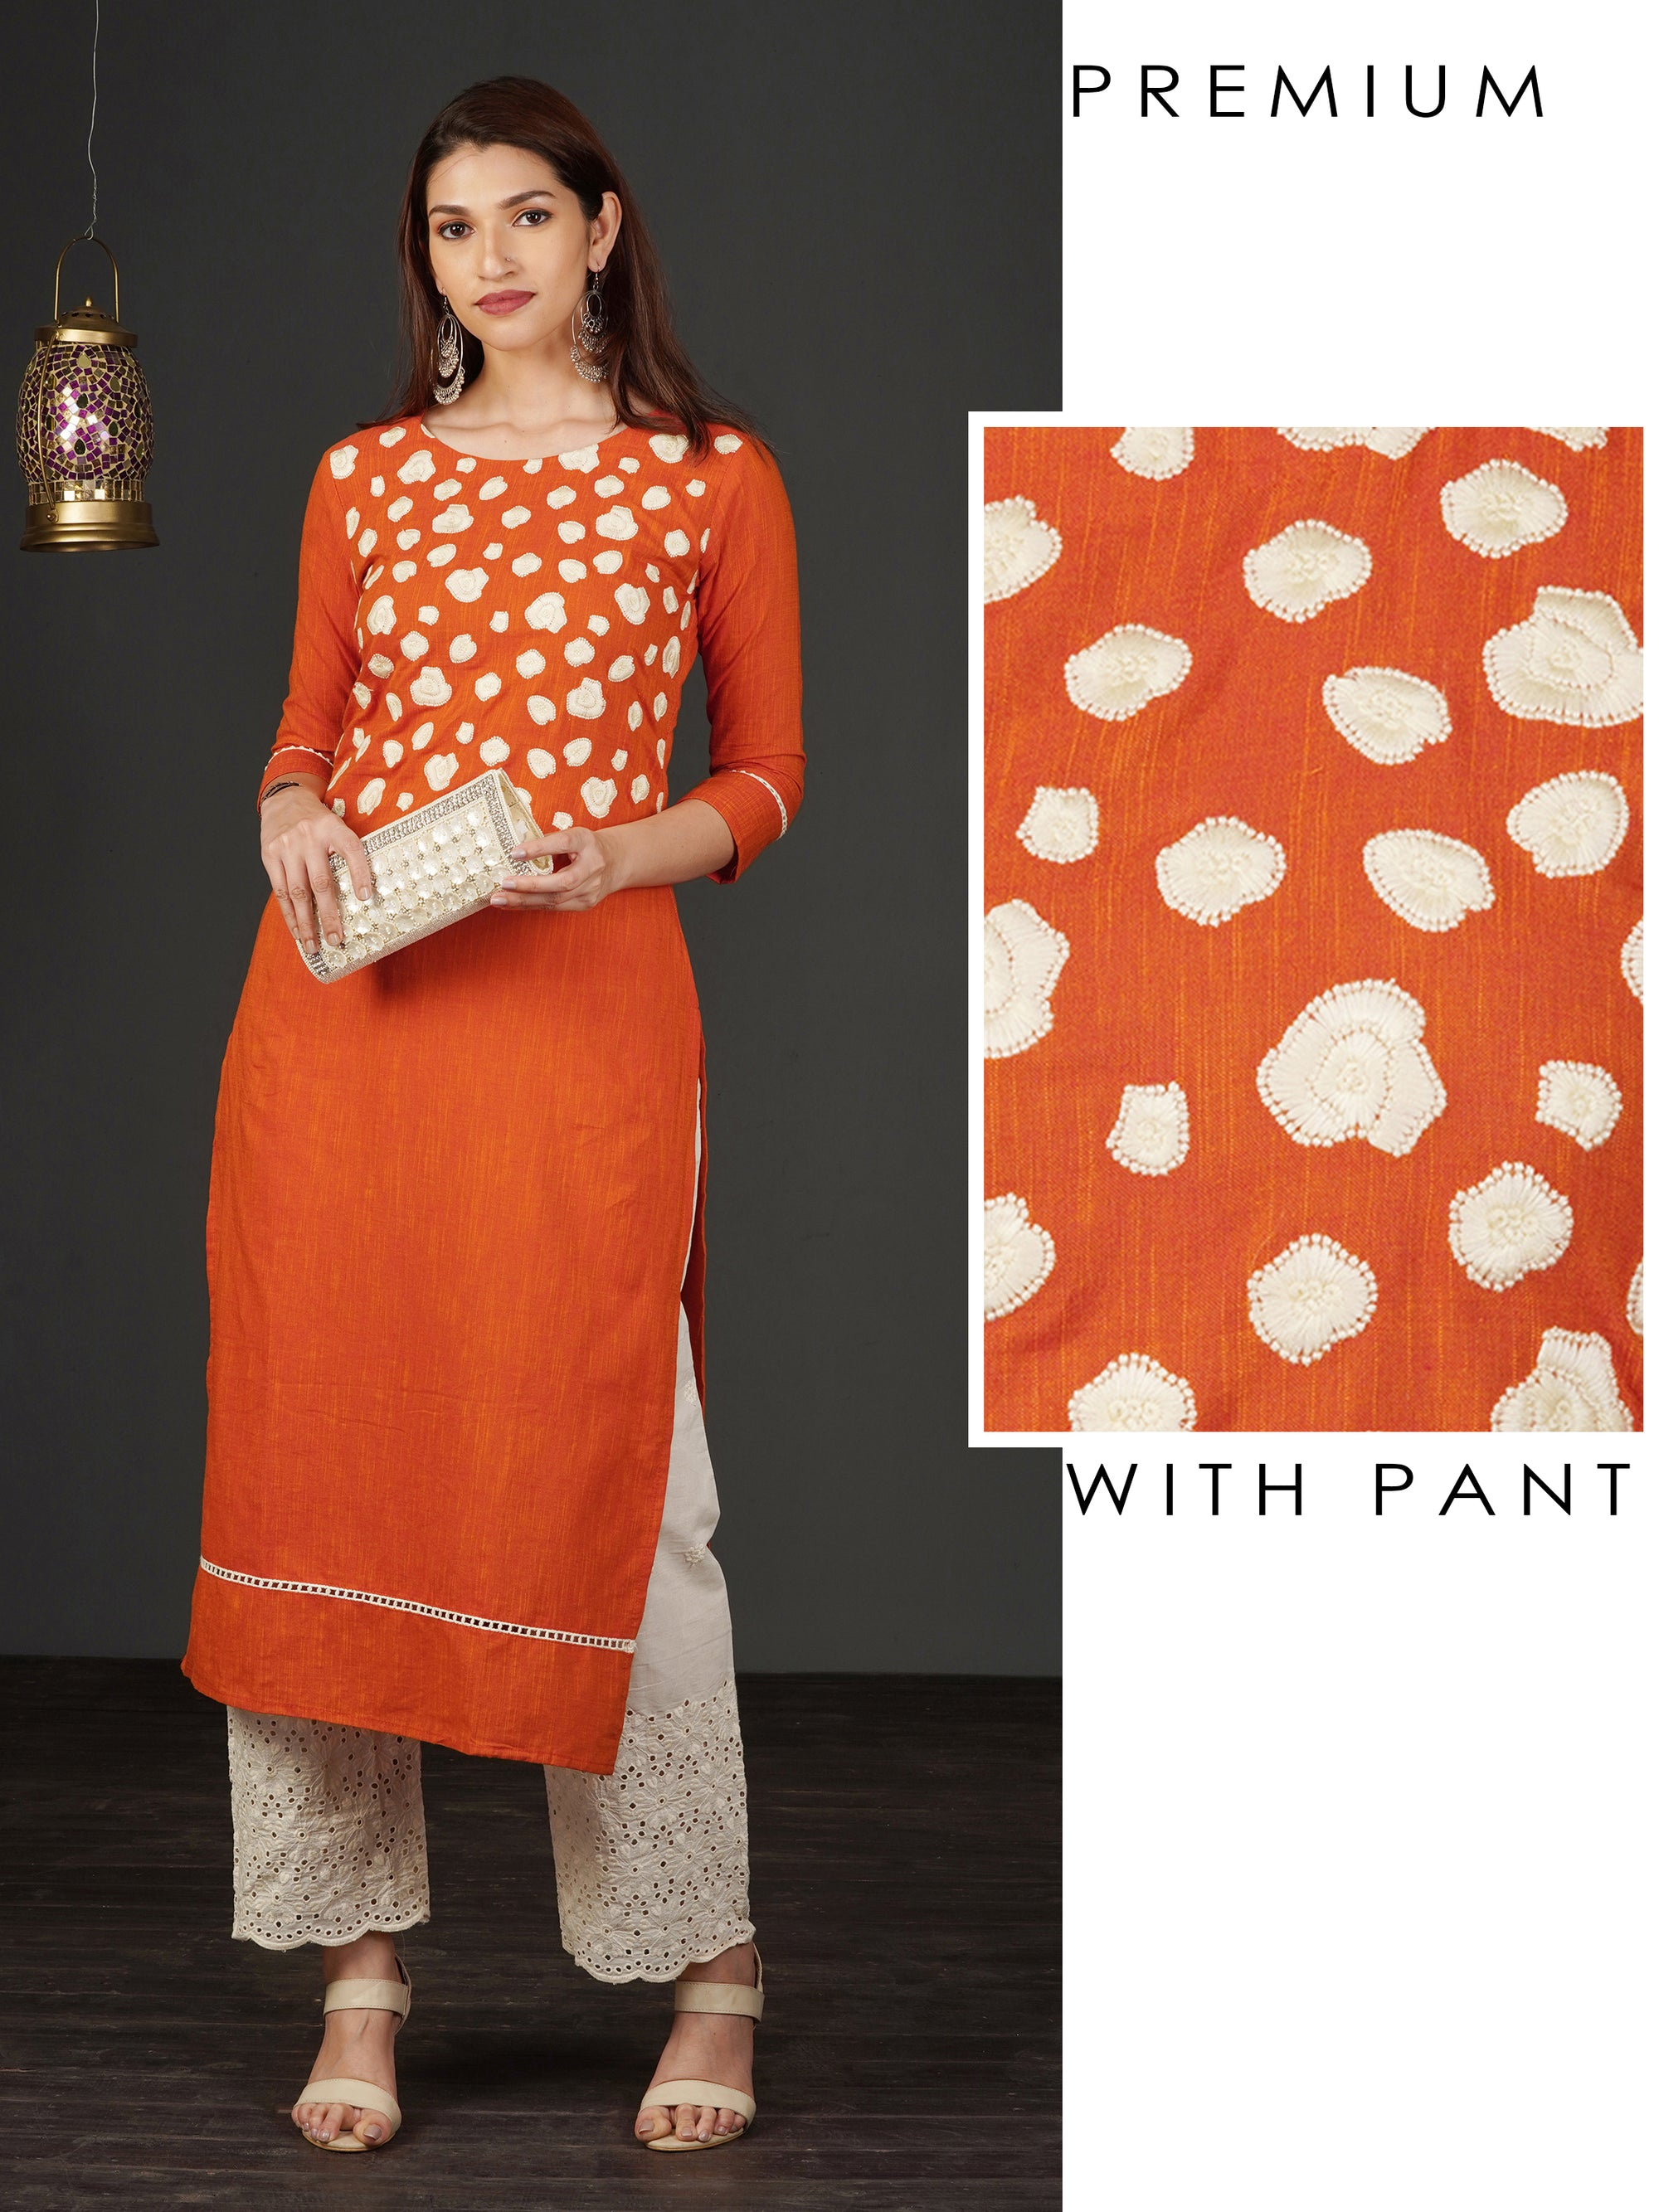 Abstract Floral Embroidered Kurti & Schiffli Embroidered Pant Set - Orange